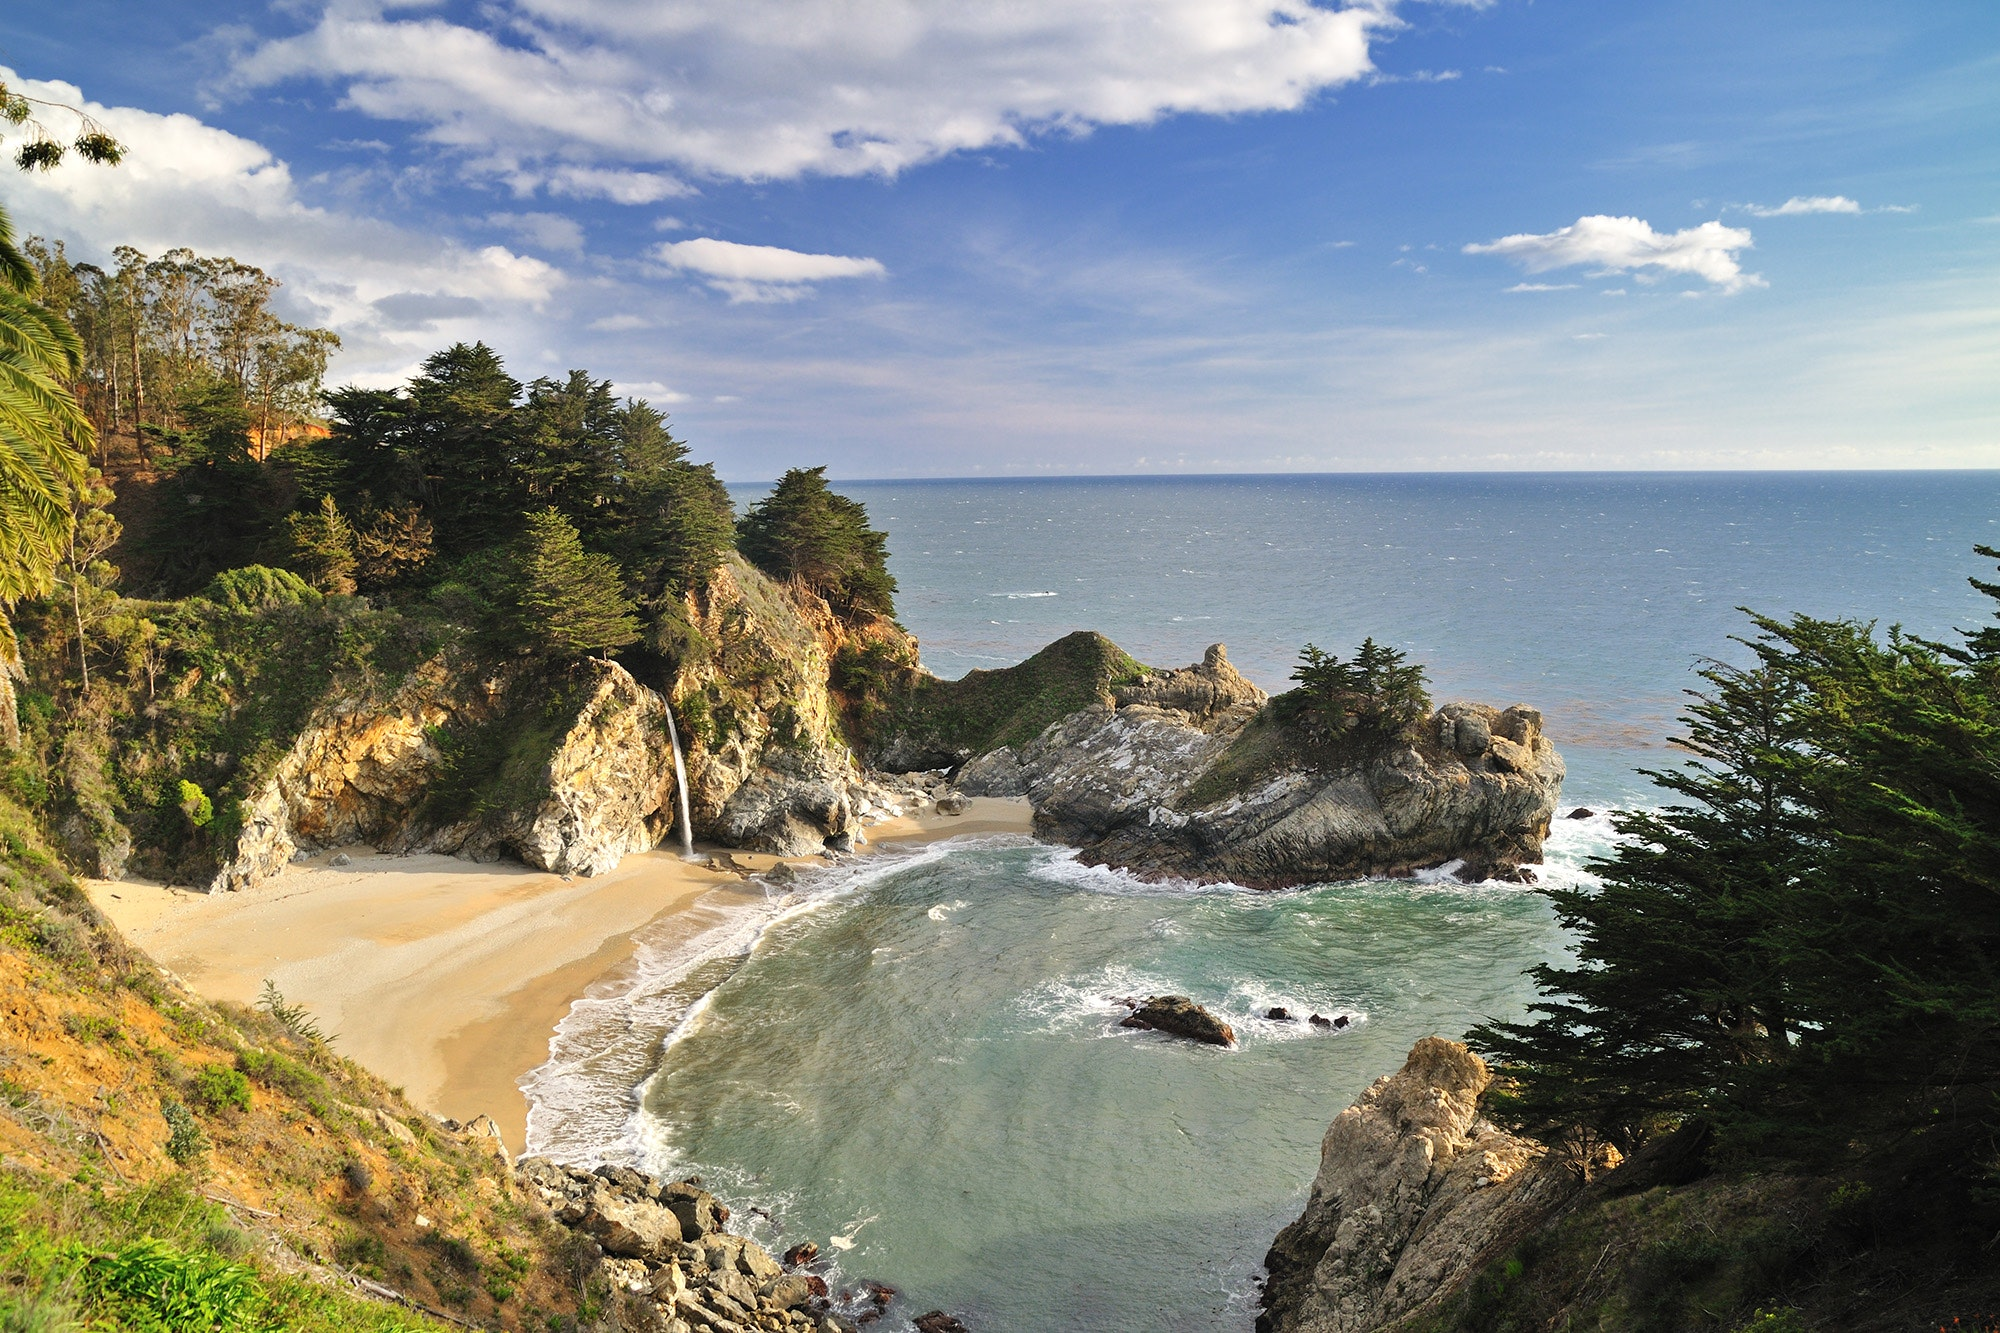 There are a number of camping options in the beloved Big Sur area, including two campsites above the iconic McWay Falls.